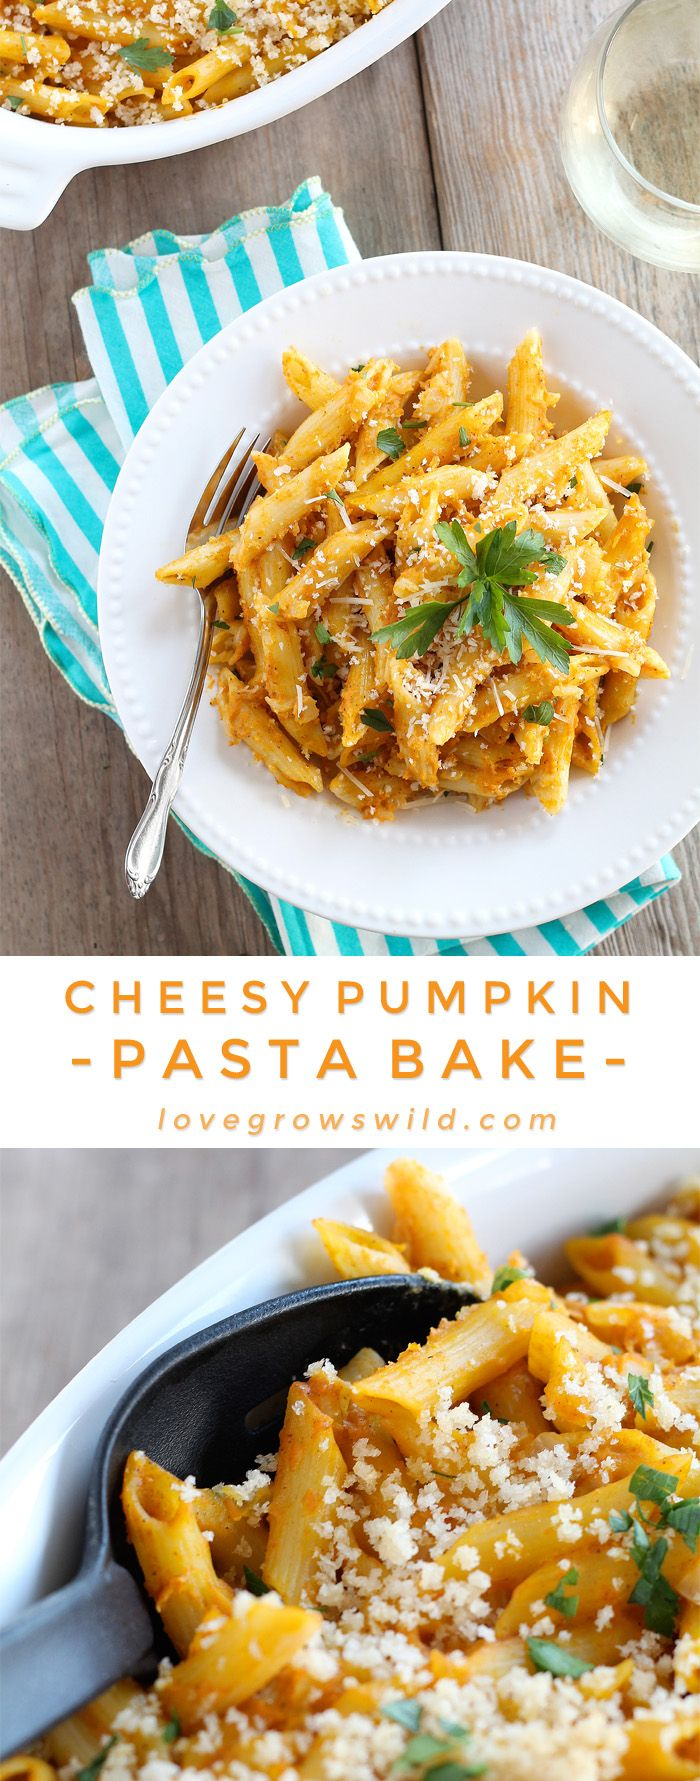 Pumpkin is not just for dessert anymore! This Cheesy Pumpkin Pasta Bake is super creamy and SO delicious! | LoveGrowsWild.com